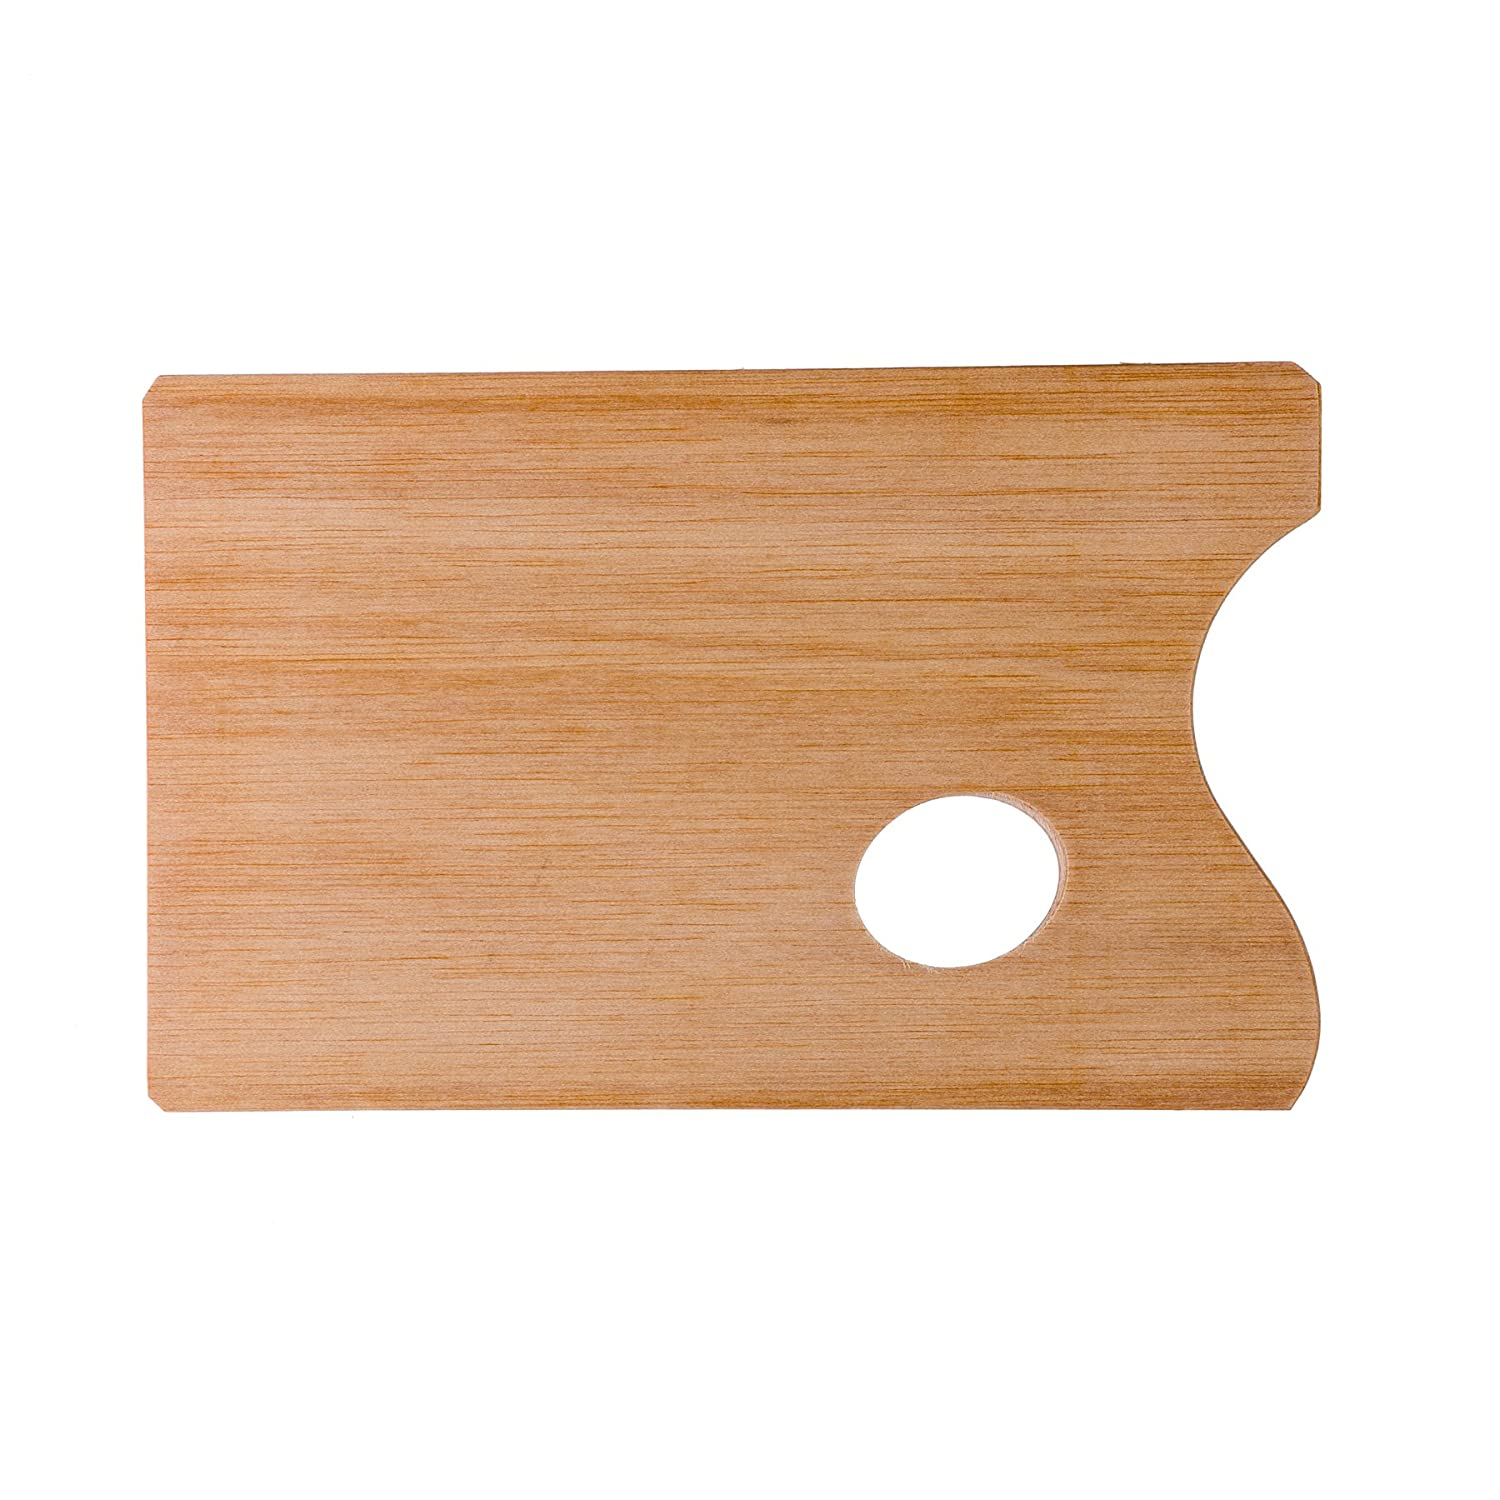 Lienzos Levante 1120102005 - Rectangular painters palette, made with oiled wood veneer